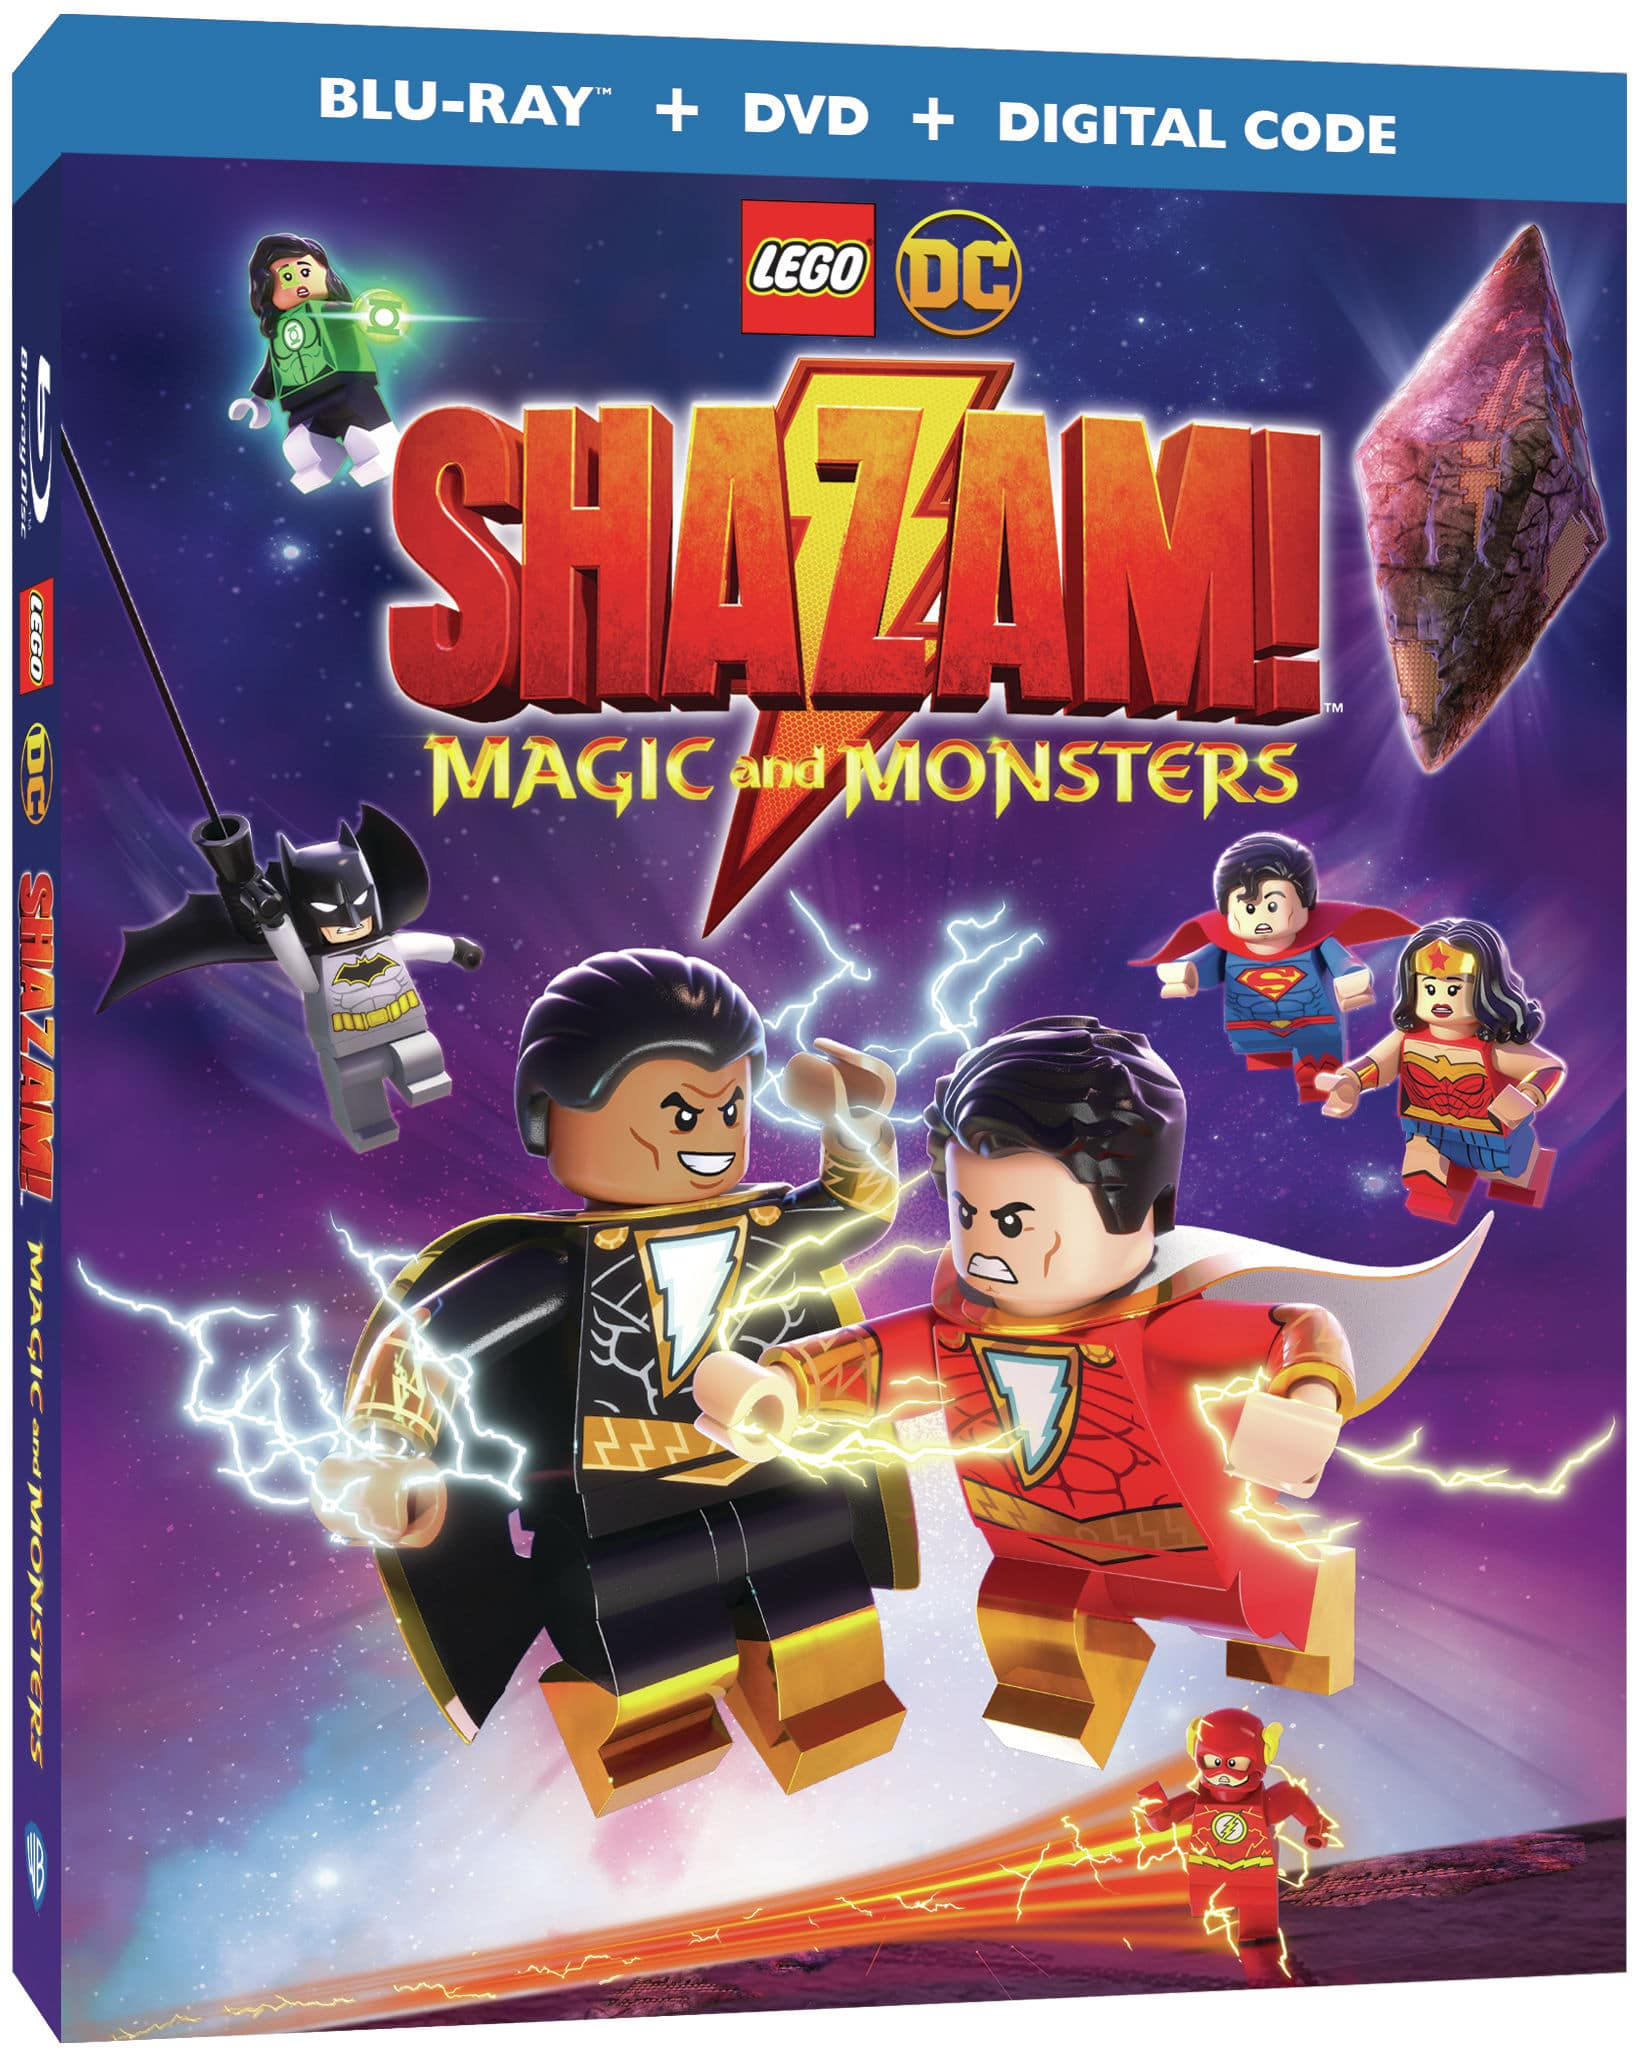 LEGO® DC: Shazam! Magic and Monsters. 10-year-old Billy Batson shouts a single word and, with lightning bolts flashing, he transforms into Shazam!, a full-fledged adult Super Hero. It doesn't take long for Superman, Wonder Woman, Batman and the rest of the Justice League to take notice and invite the earnest do-gooder to join the team.